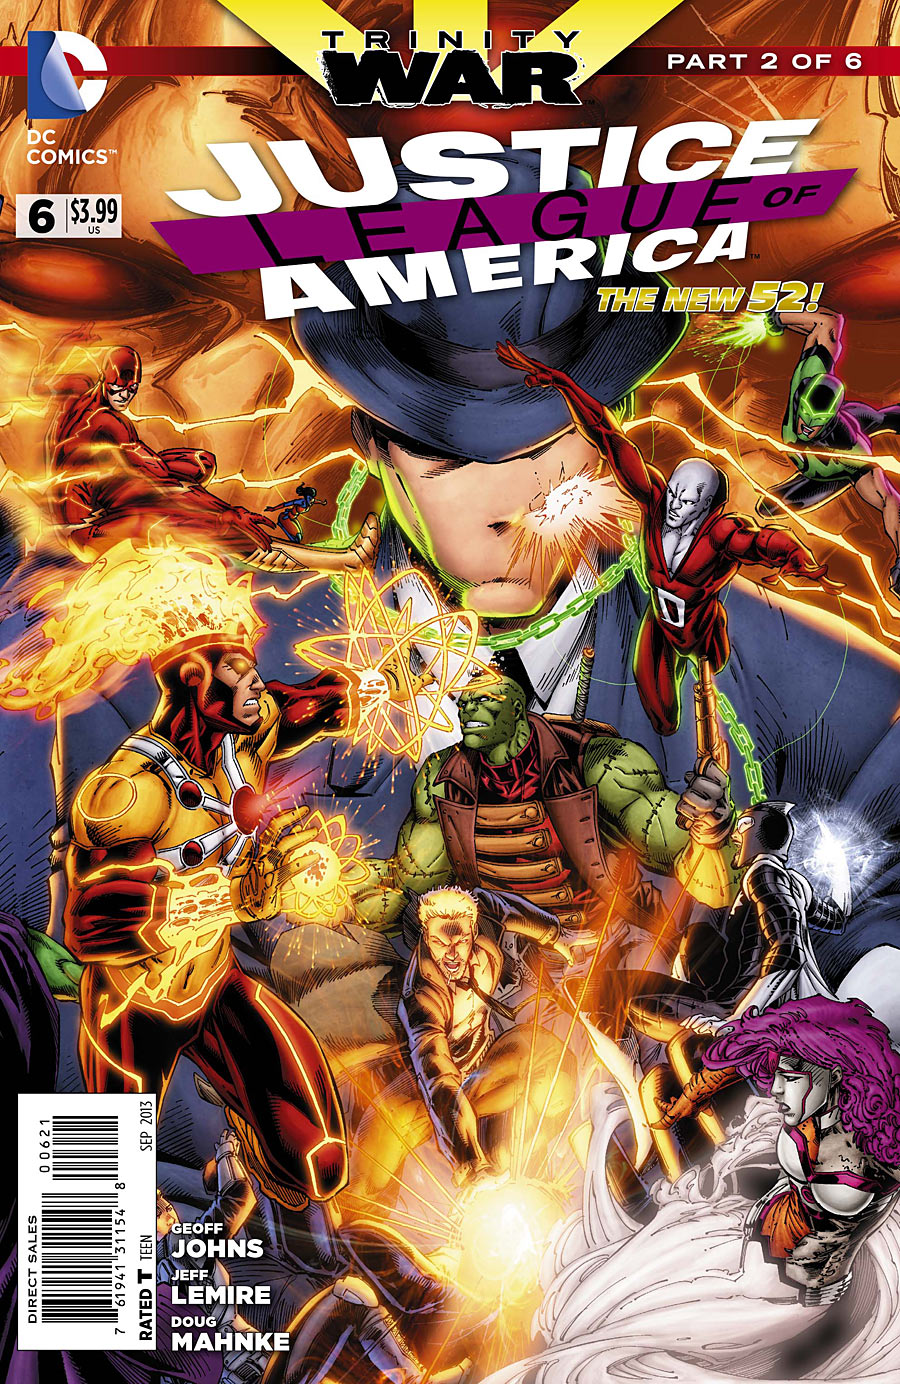 Justice League of America #6 variant cover by Brett Booth, Norm Rapmund, and Andrew Dalhouse